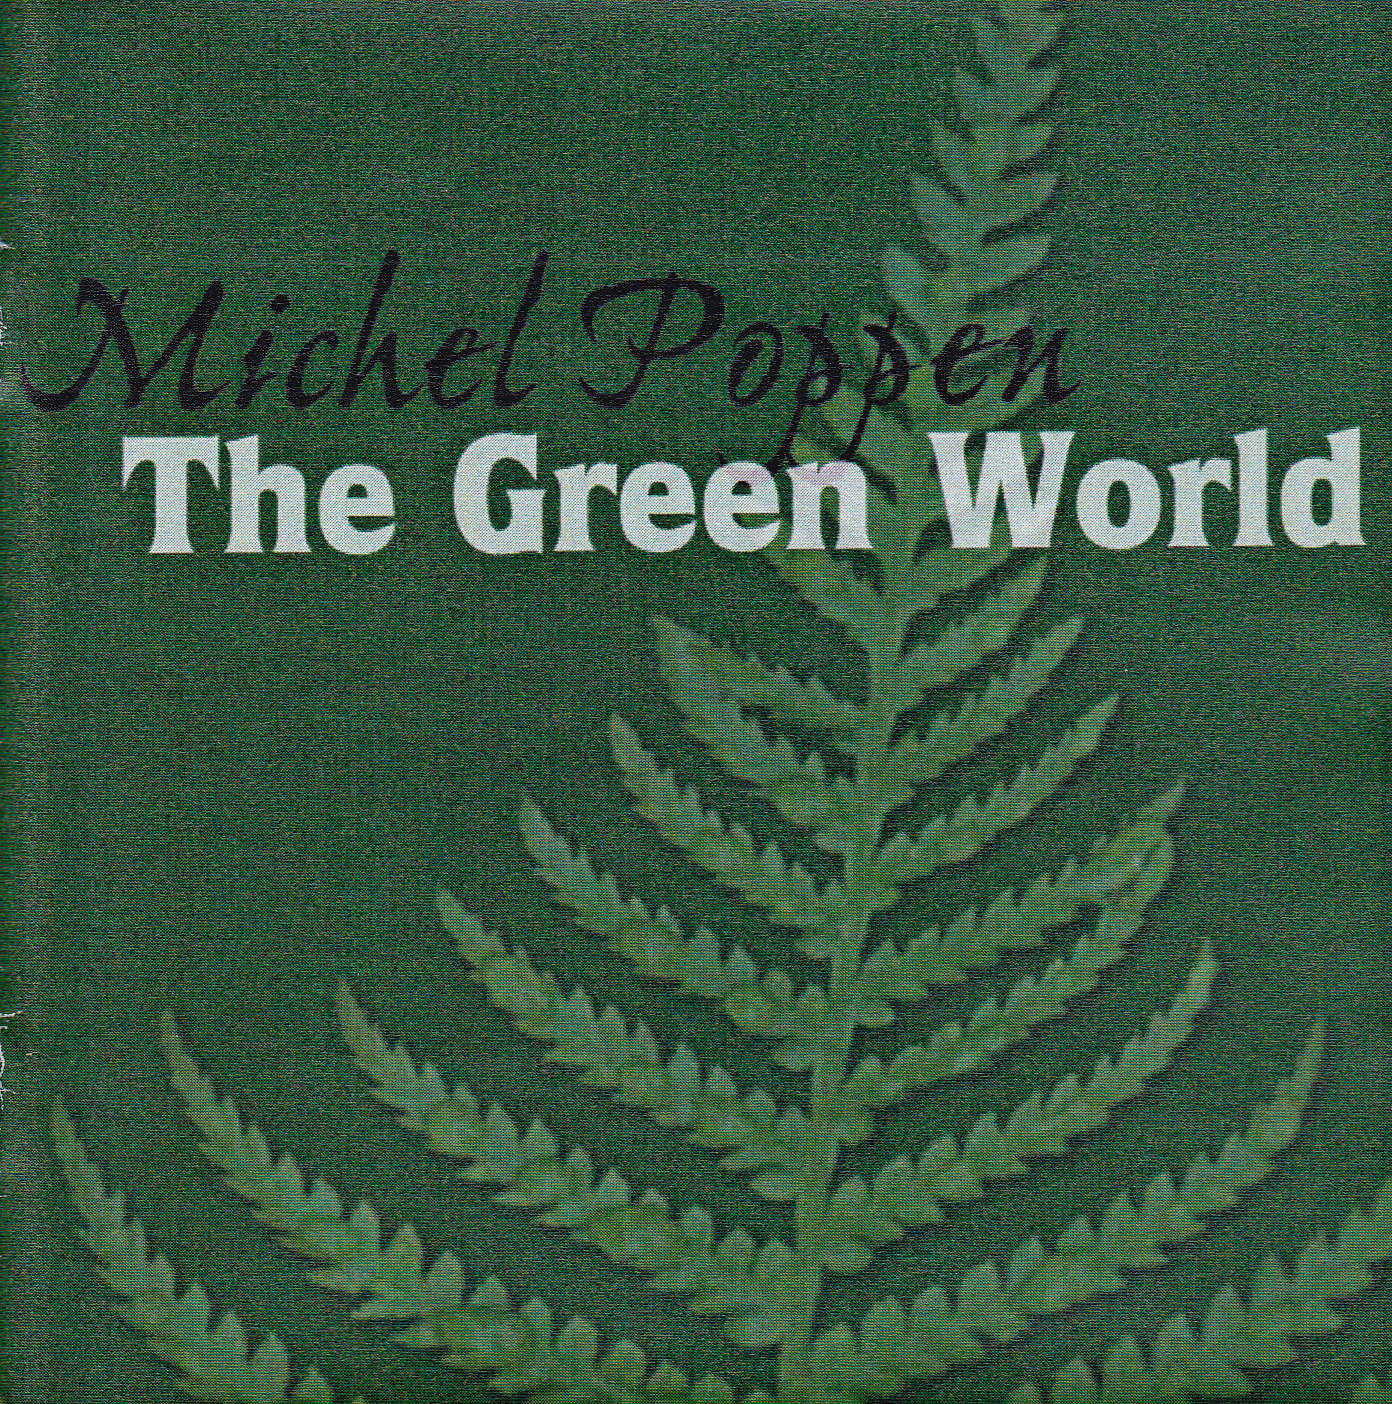 04 The green world